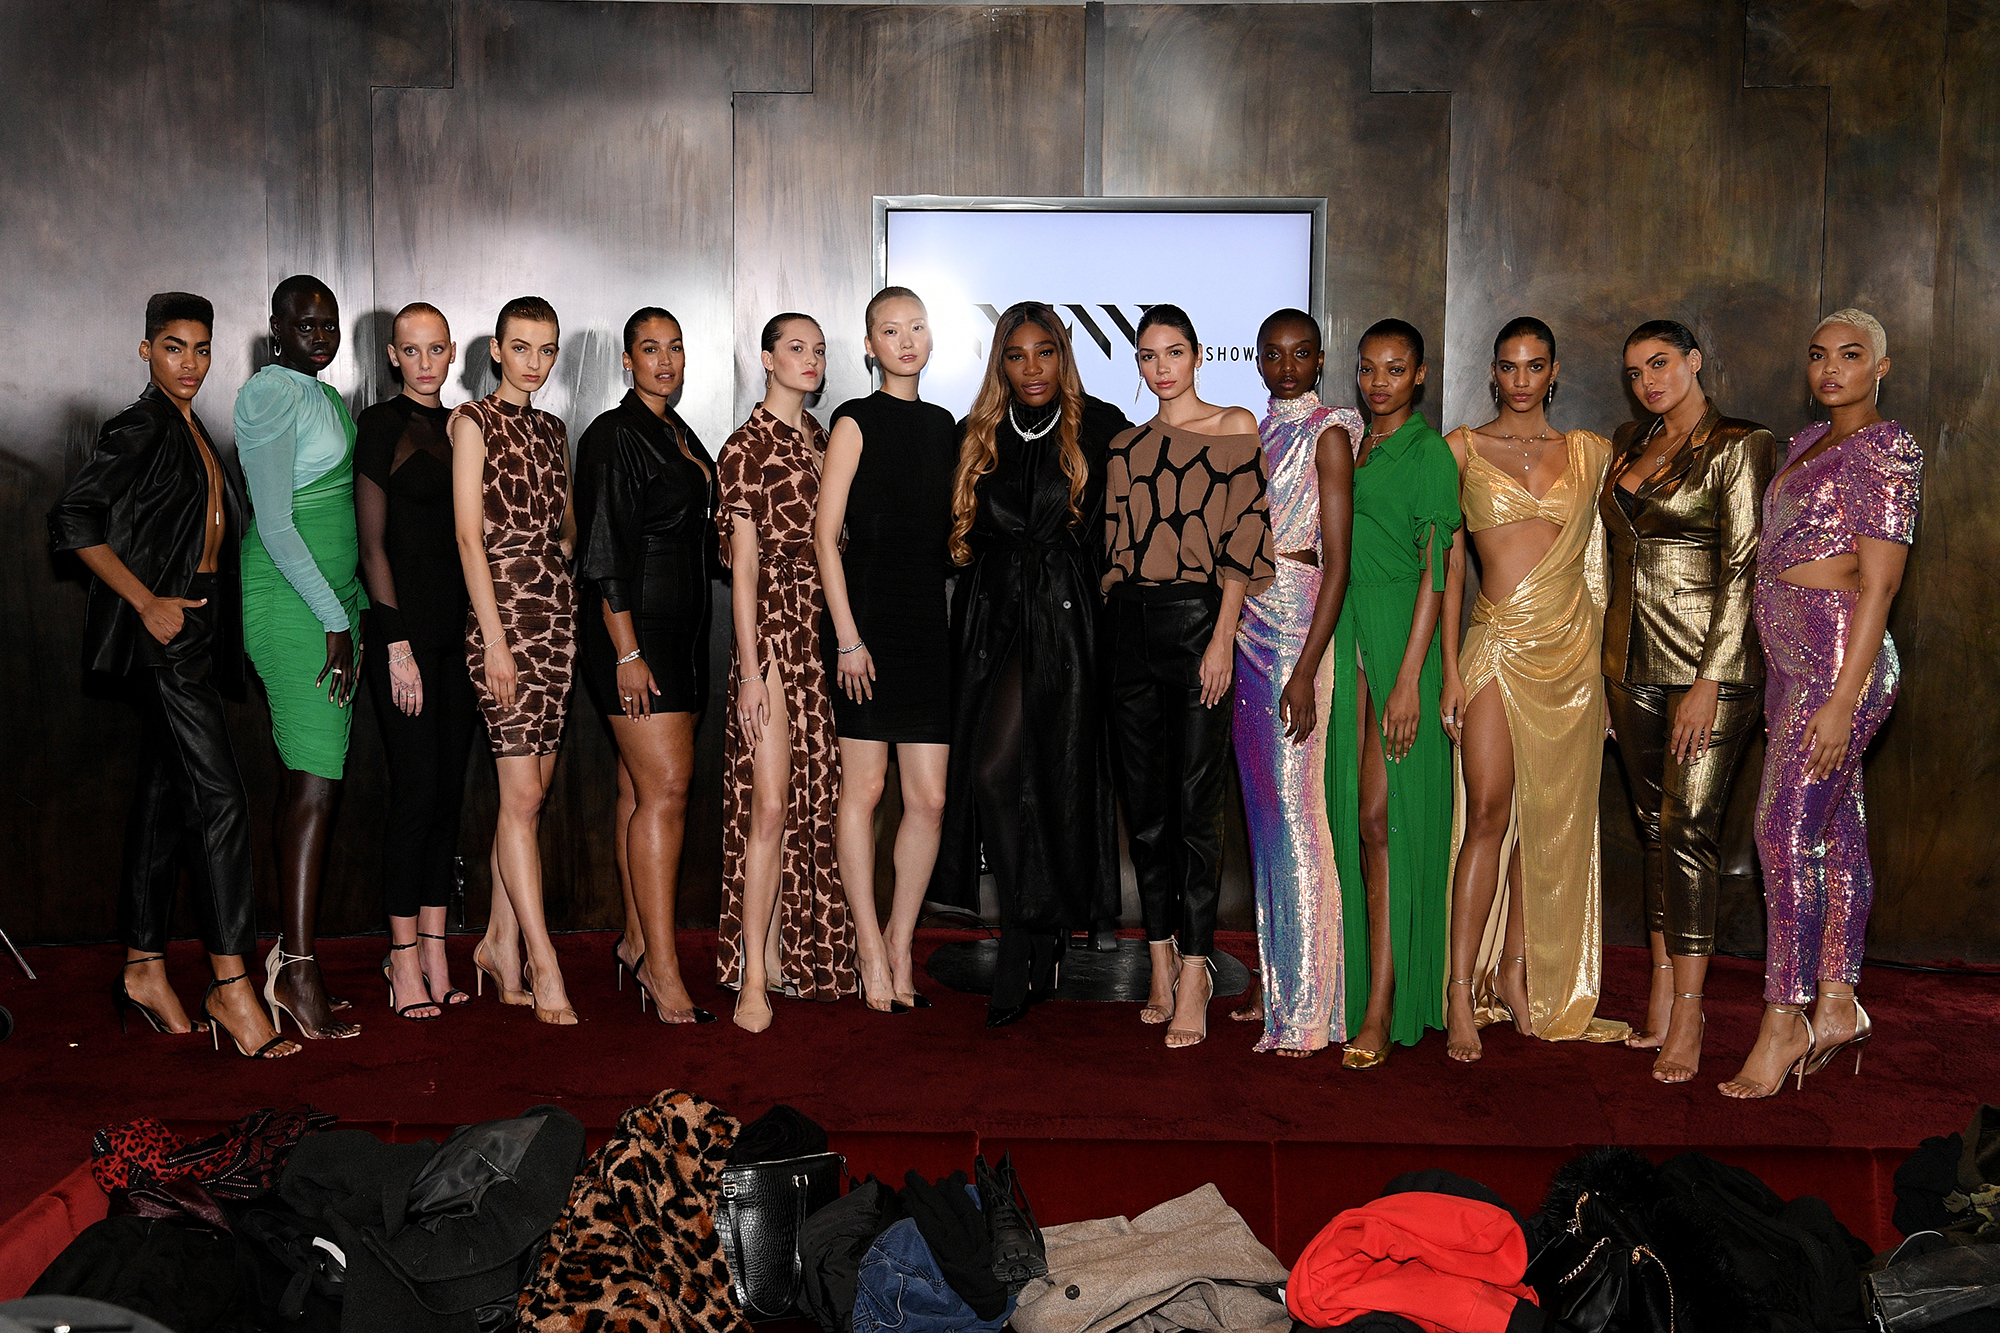 Designer Serena Williams poses with models for the S By Serena Presentation during New York Fashion Week (Photo by Dia Dipasupil/Getty Images)